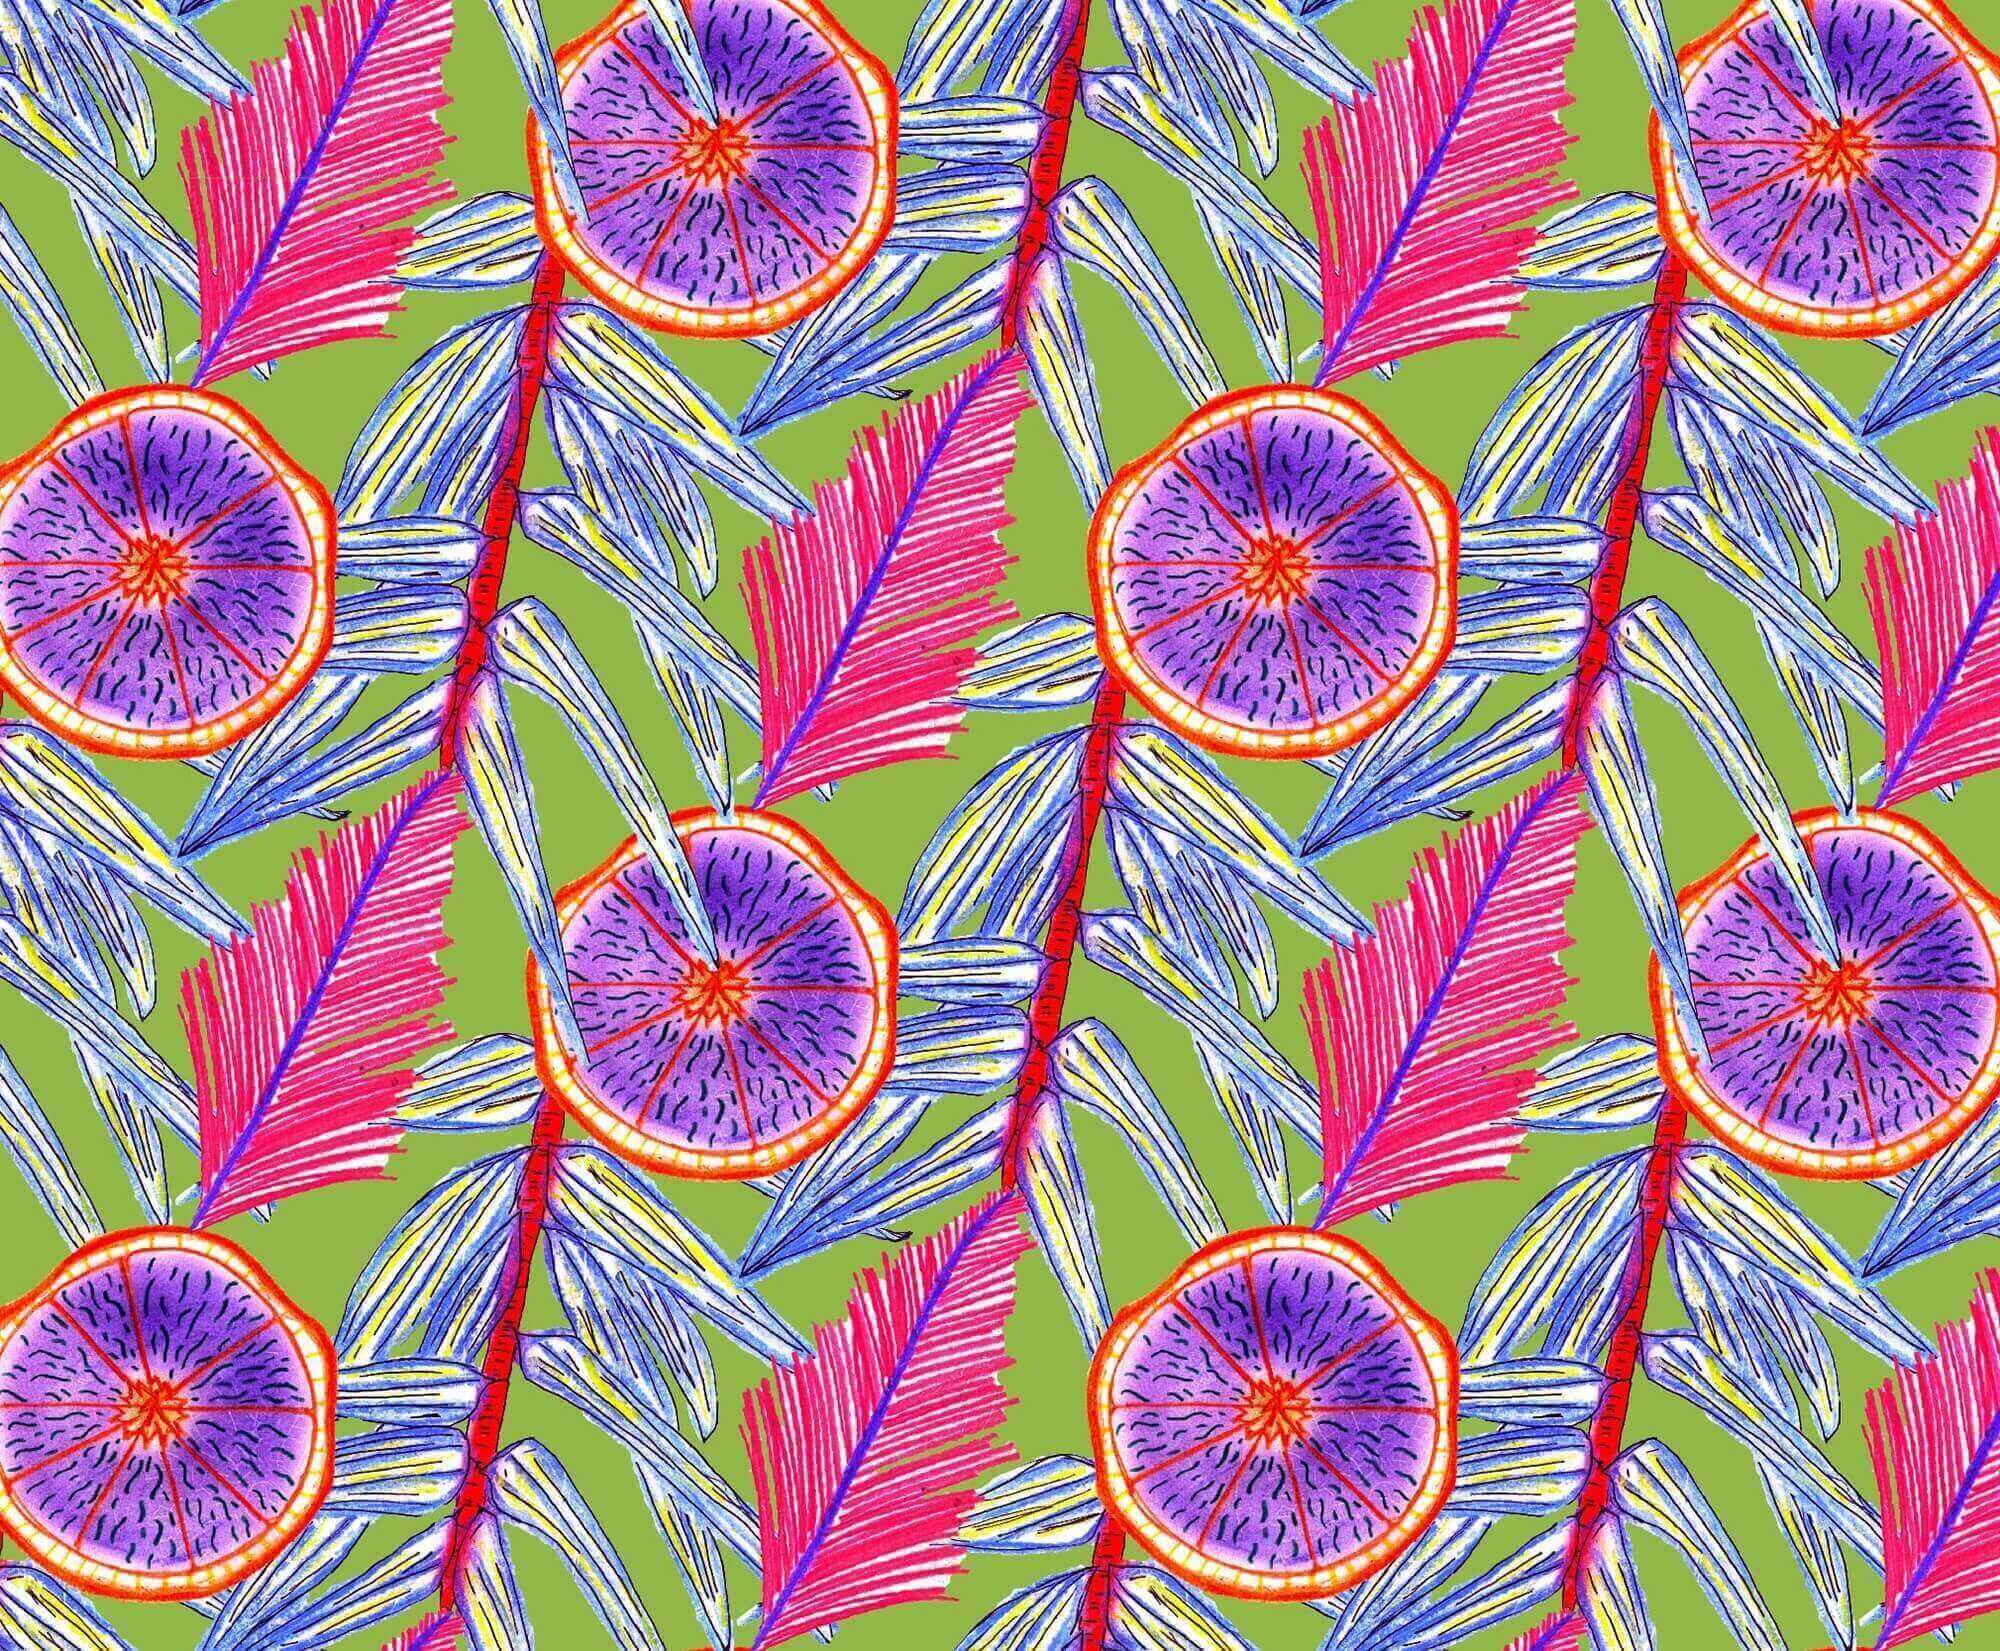 a digital print design of a repeated pattern of a branch with leaves, a palm frond and a split segmented fruit